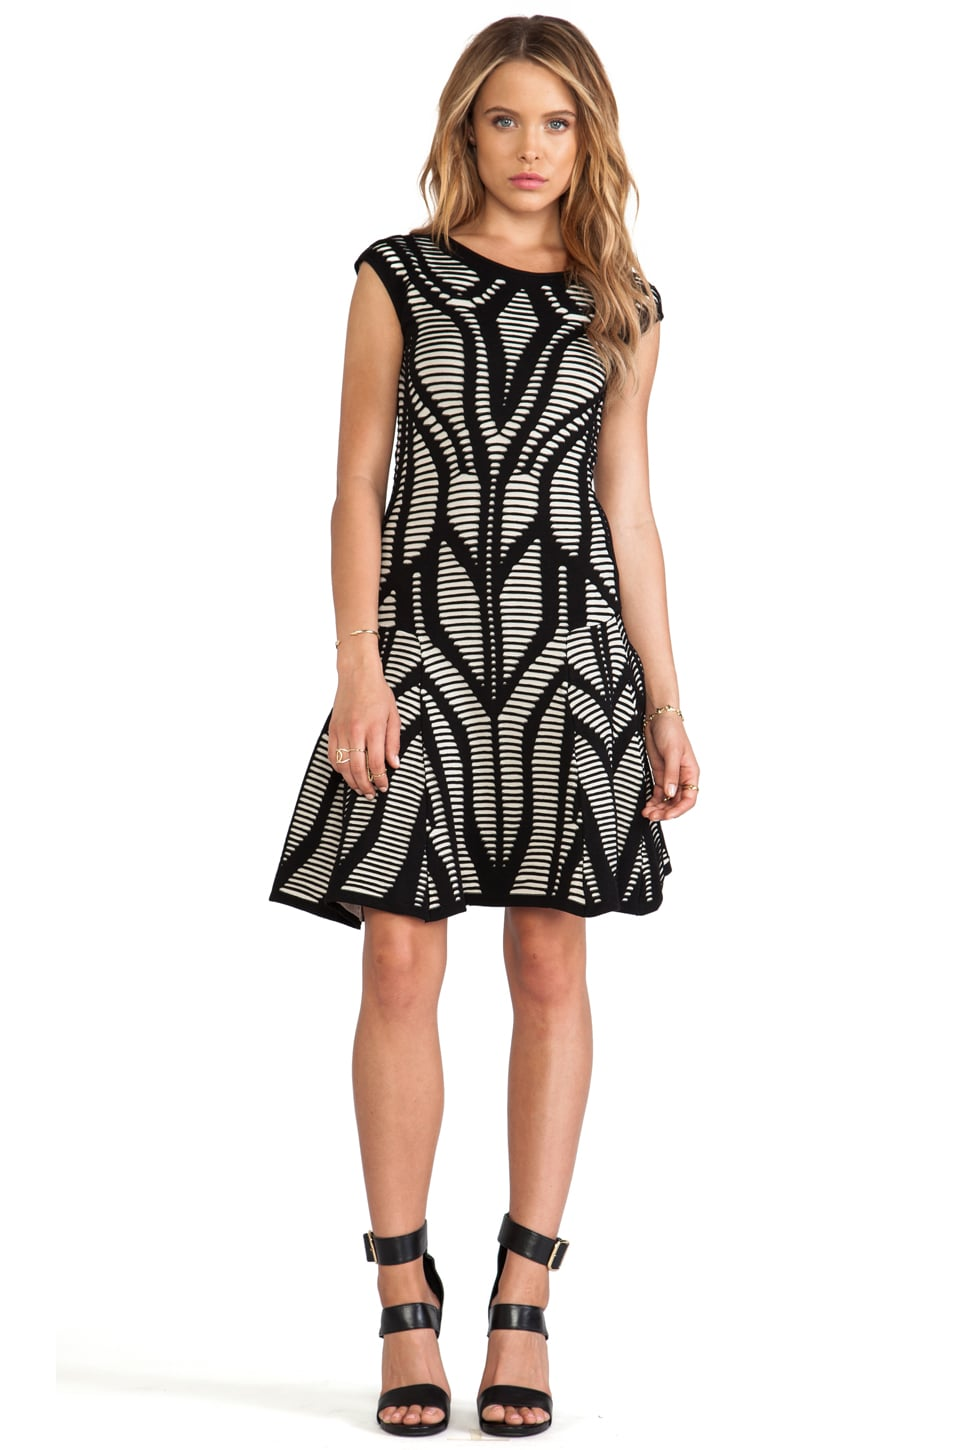 RVN Congo Cutout Illusion Dress in Black & Sand